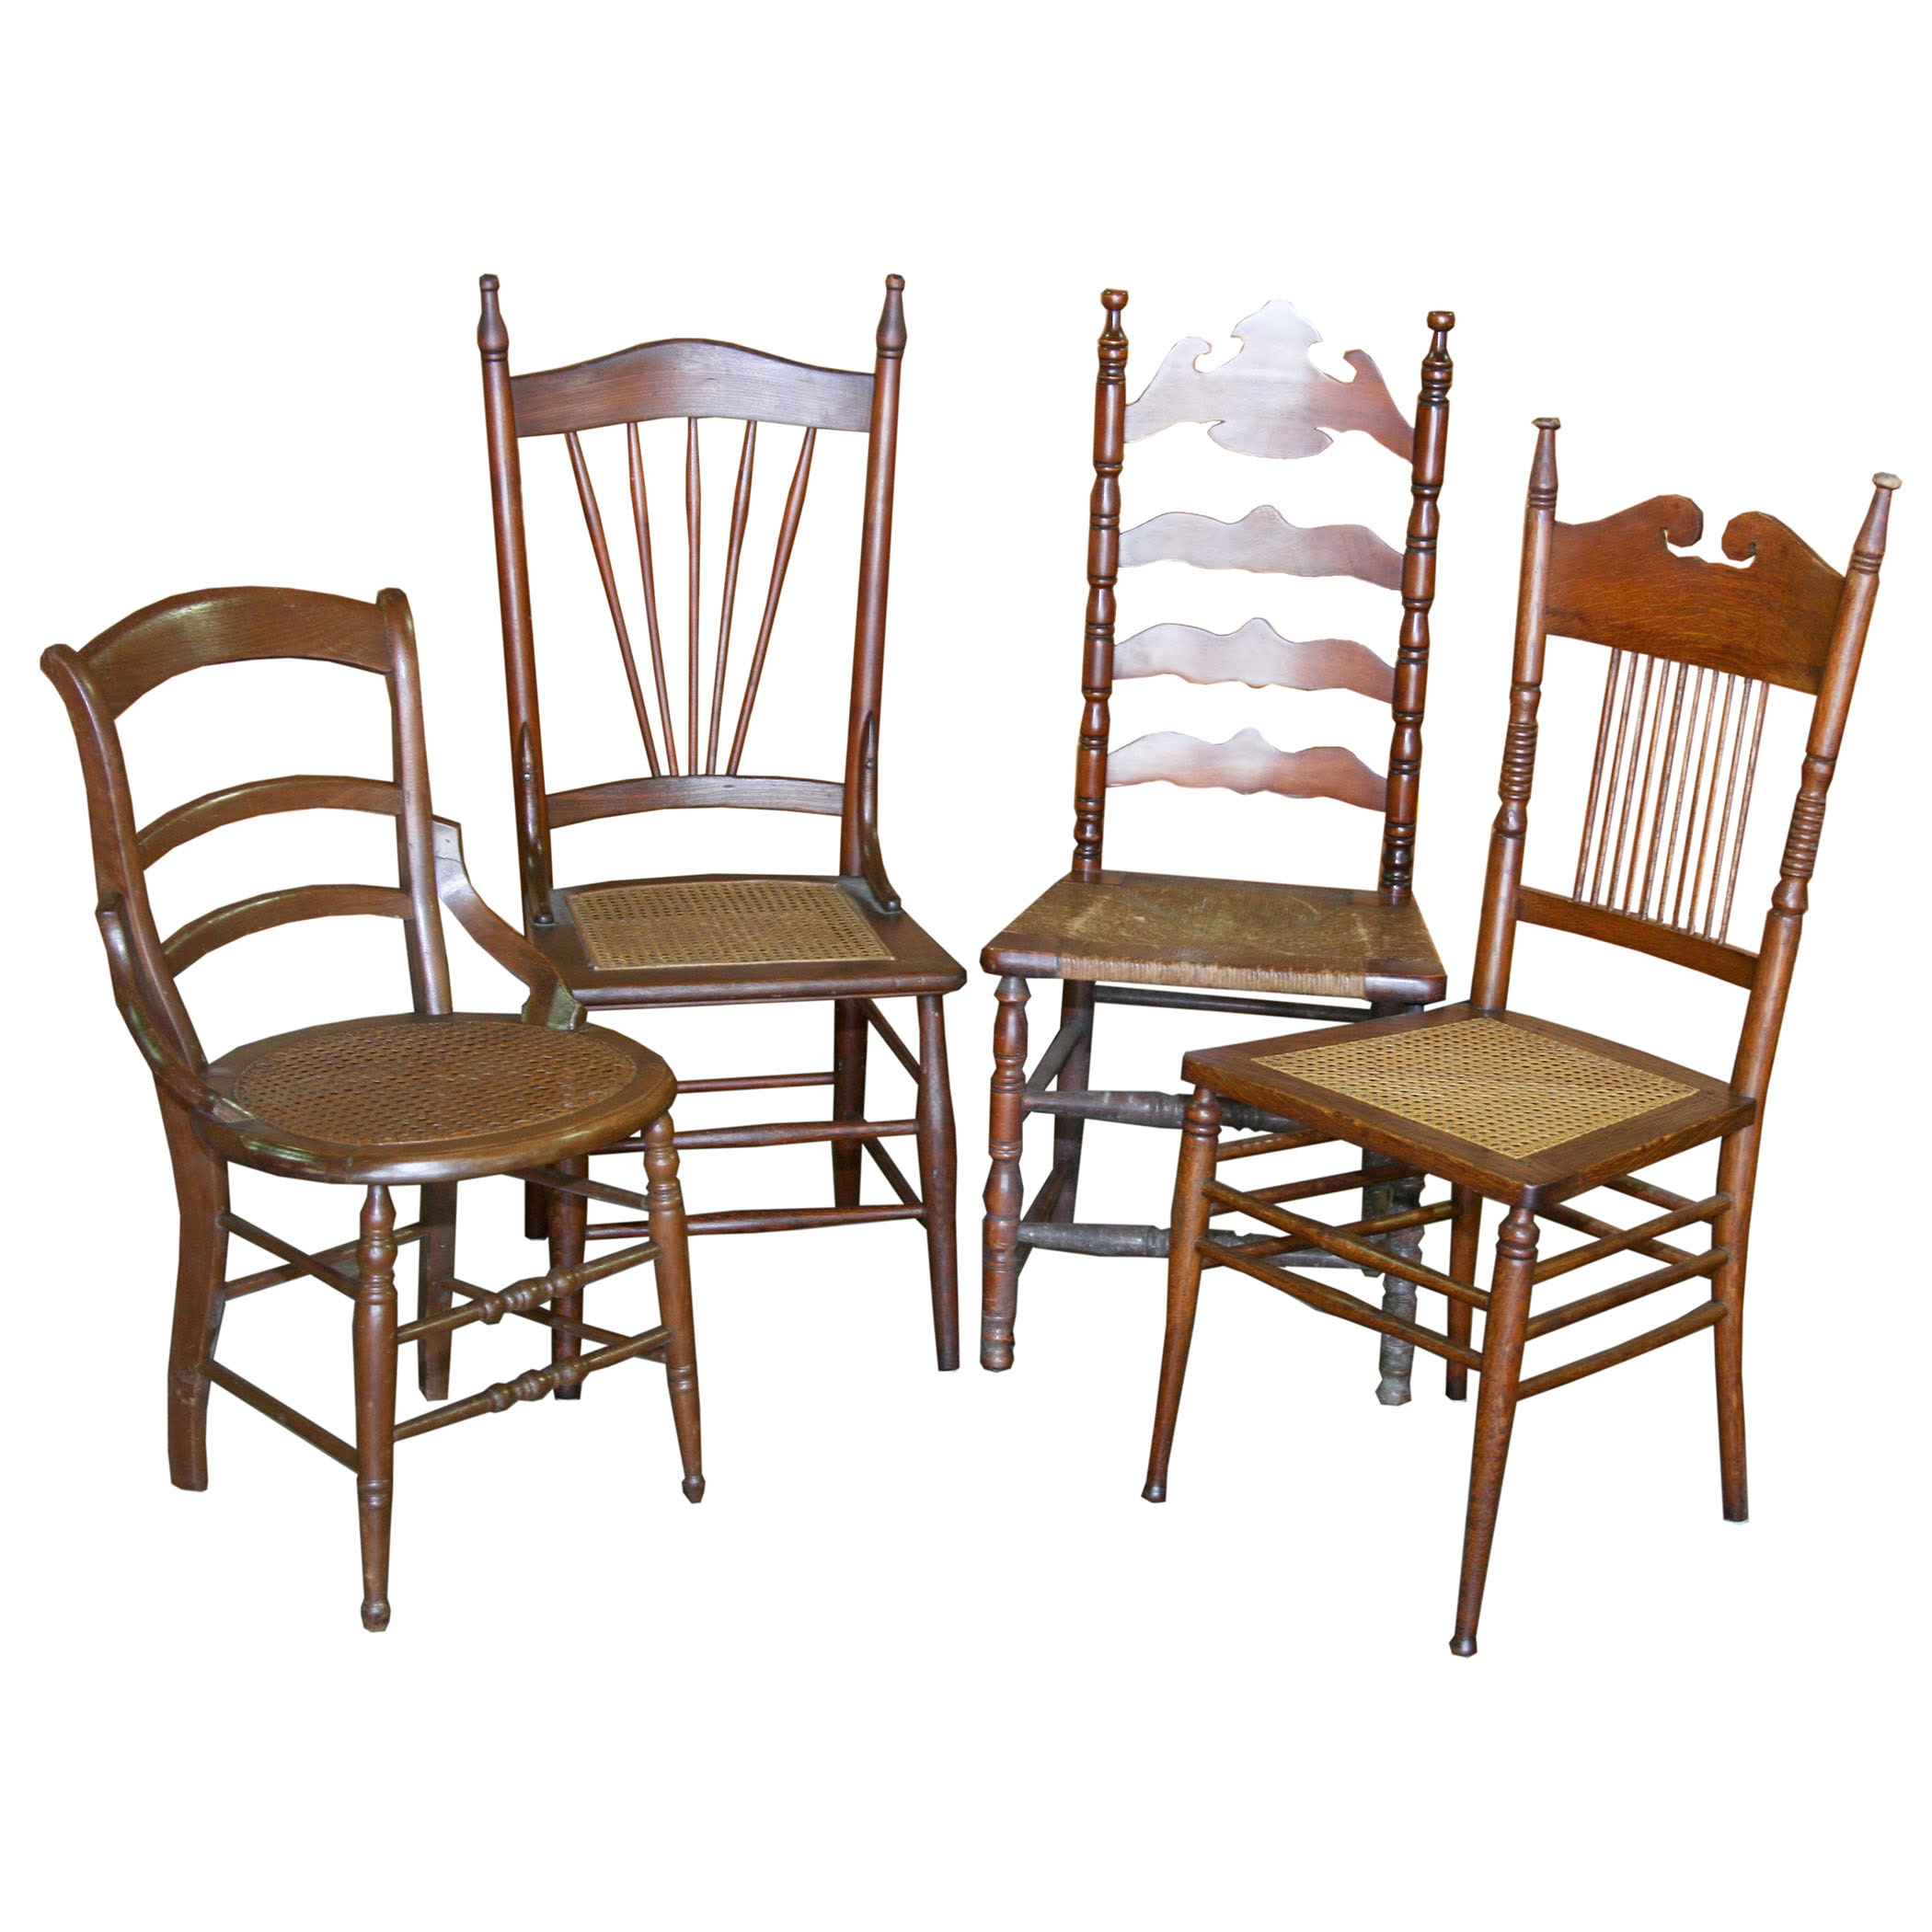 Four Farmhouse Dining Chairs